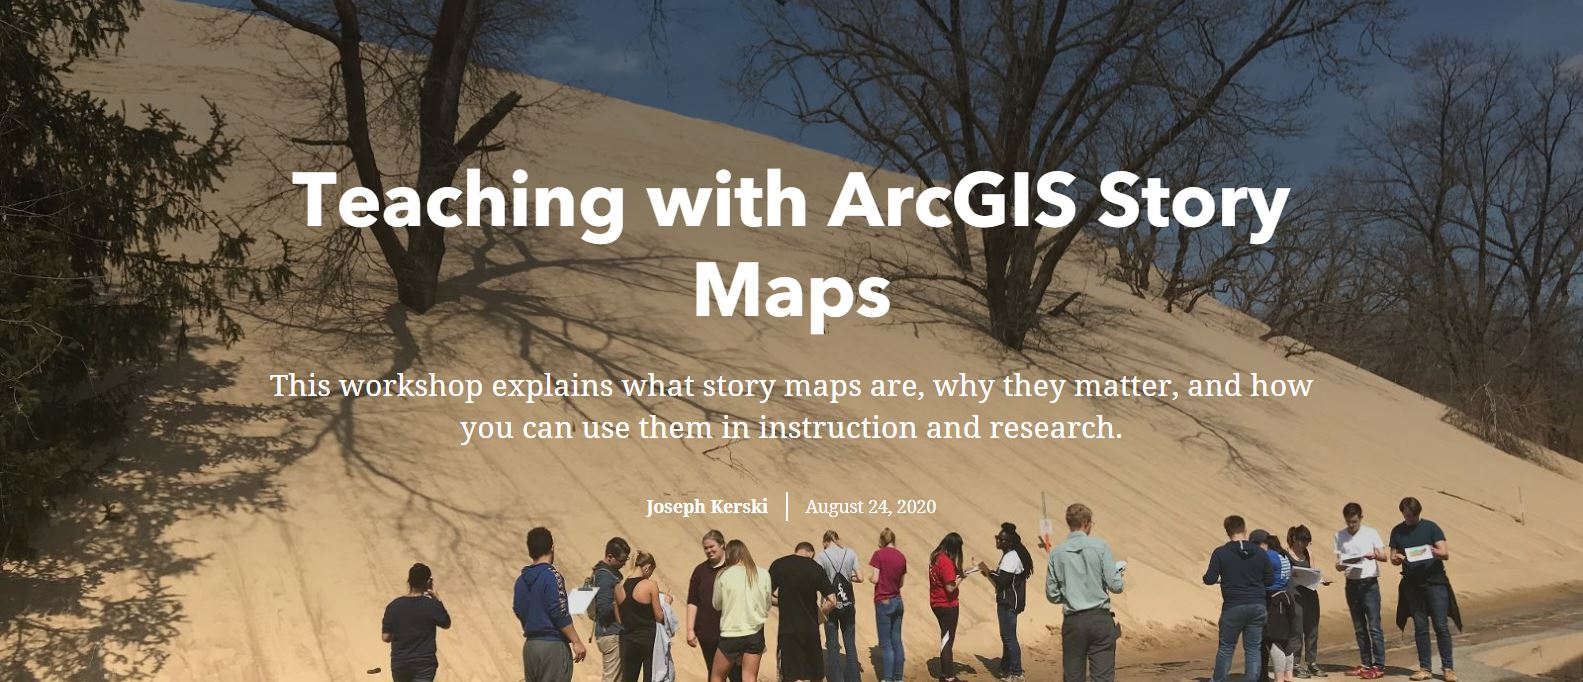 Teaching with ArcGIS Story Maps screenshot